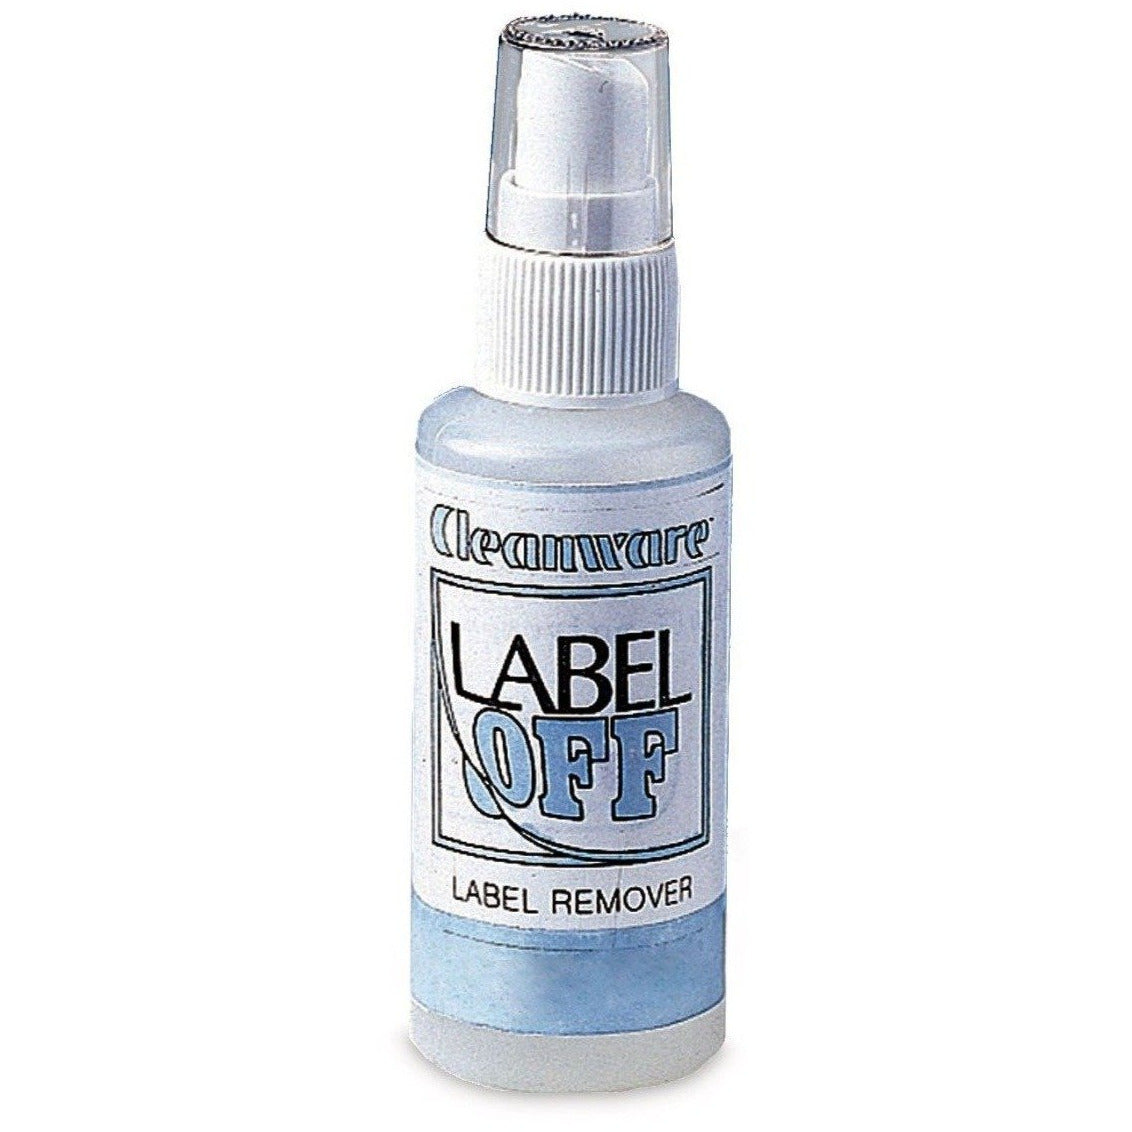 Cleanware™ Label Remover